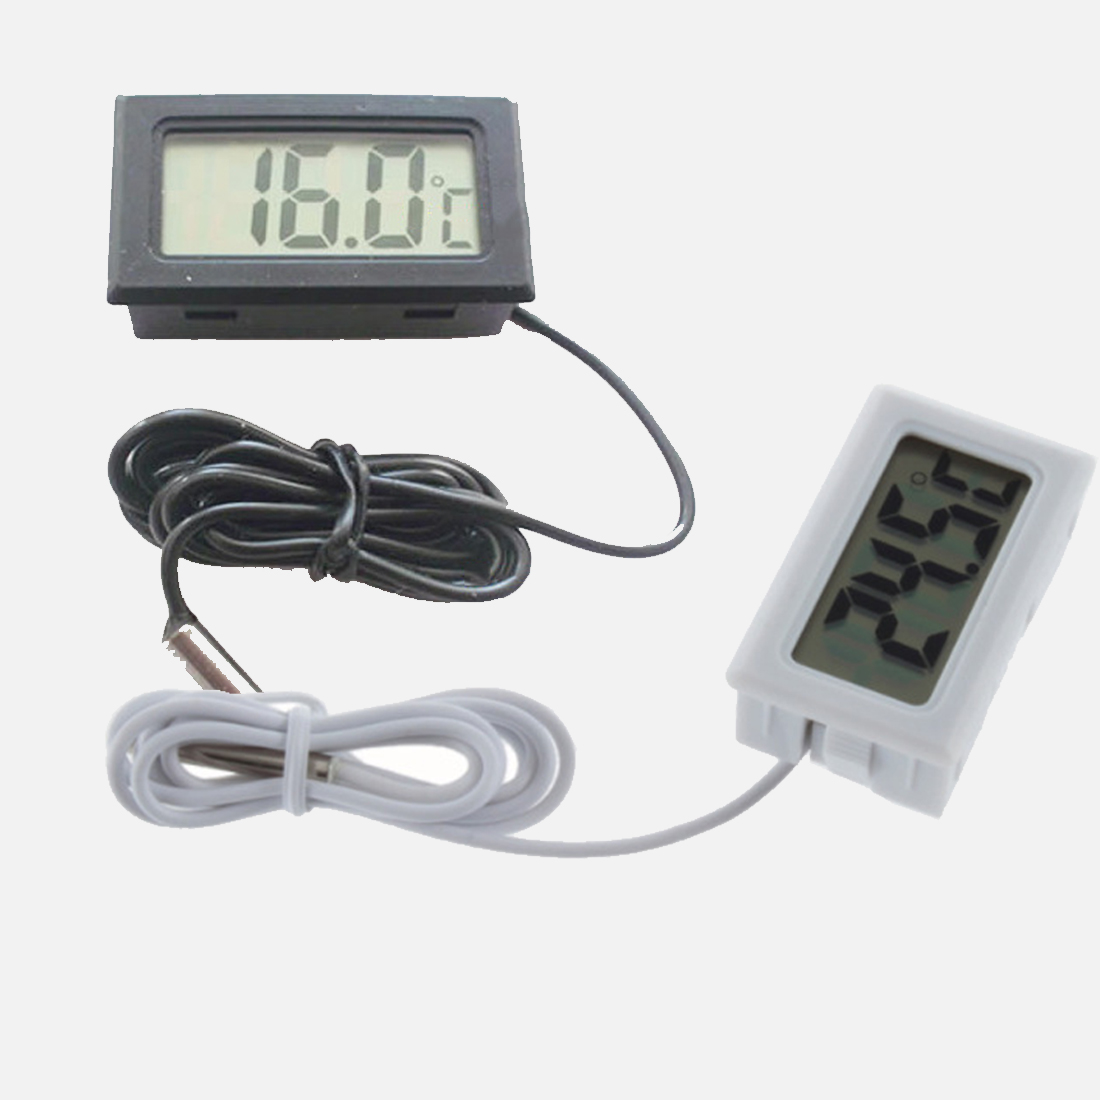 High Mini LCD Display Inlay Digital Thermometer Probe Refrigerator Fish Tank Temperature Tester 50C 110C Include